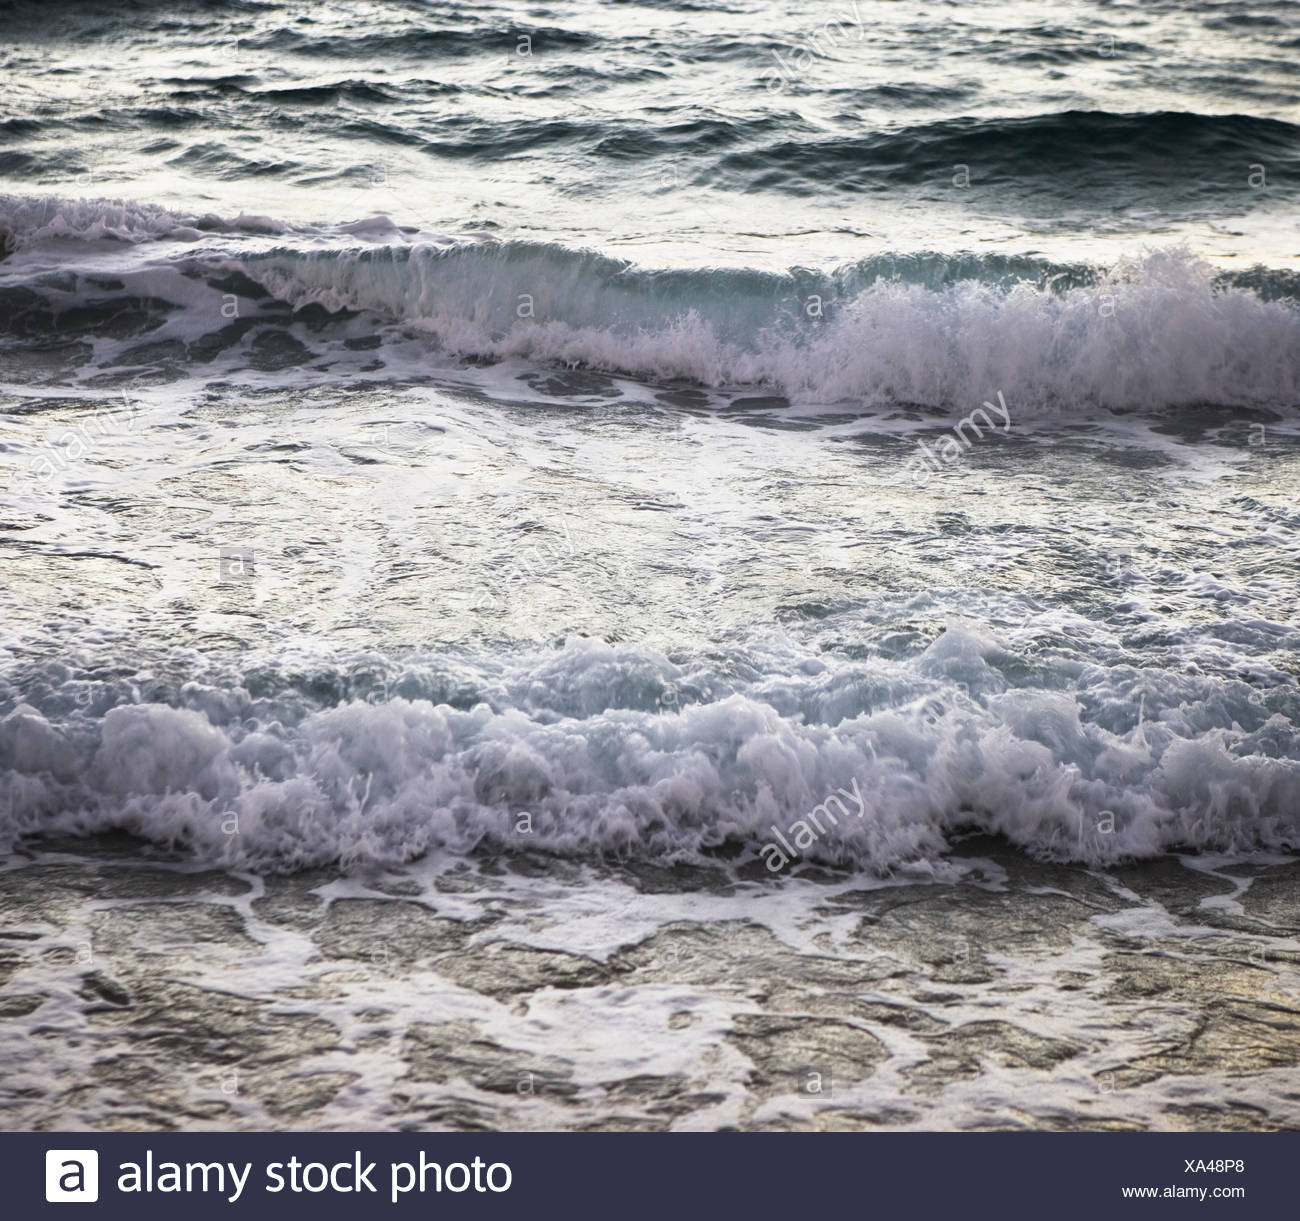 waves on the beach, erosion - Stock Image